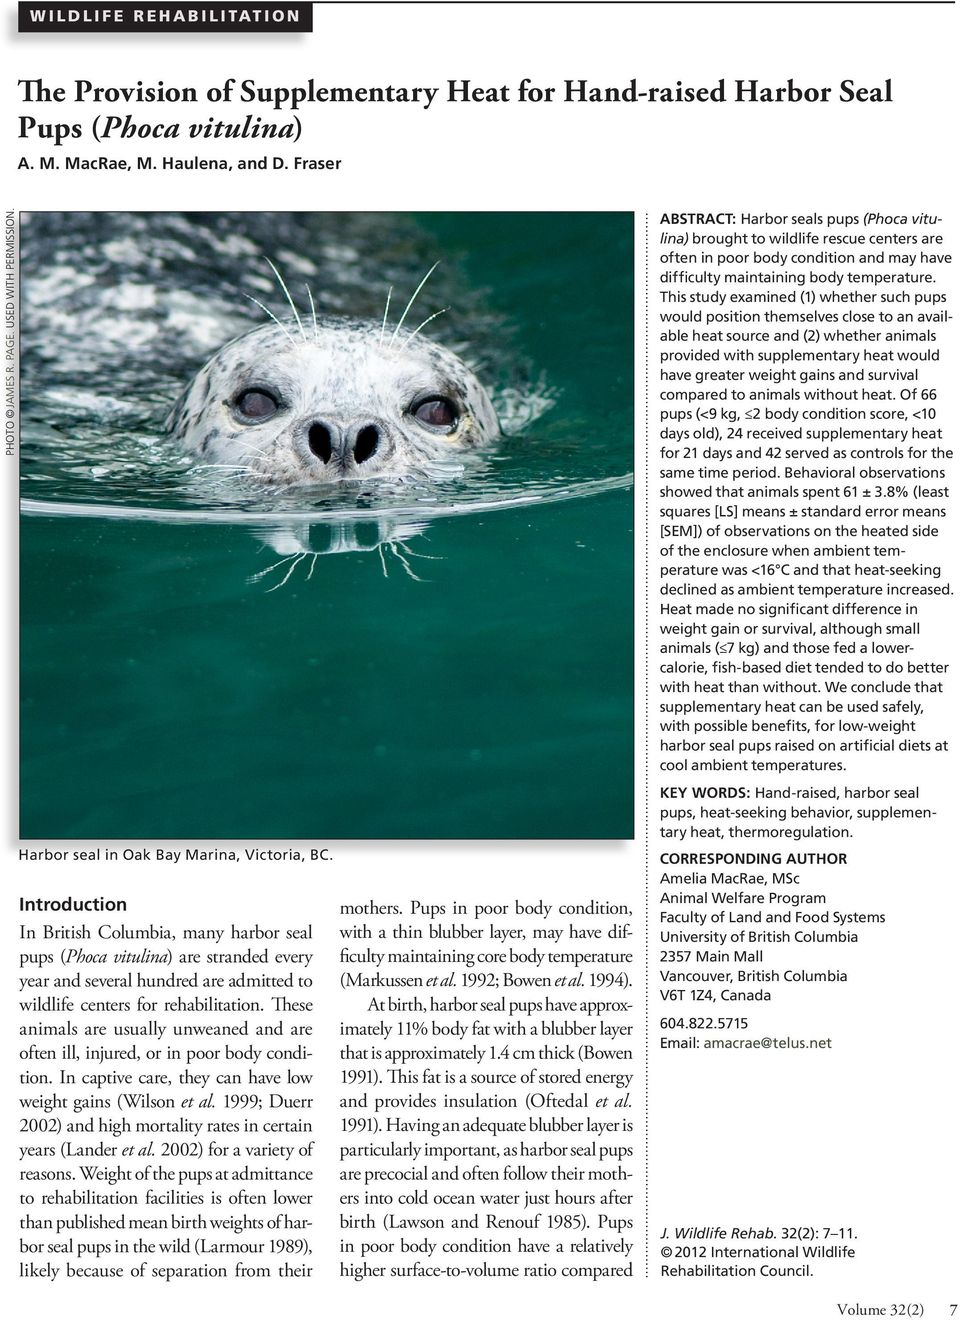 Introduction In British Columbia, many harbor seal pups (Phoca vitulina) are stranded every year and several hundred are admitted to wildlife centers for rehabilitation.